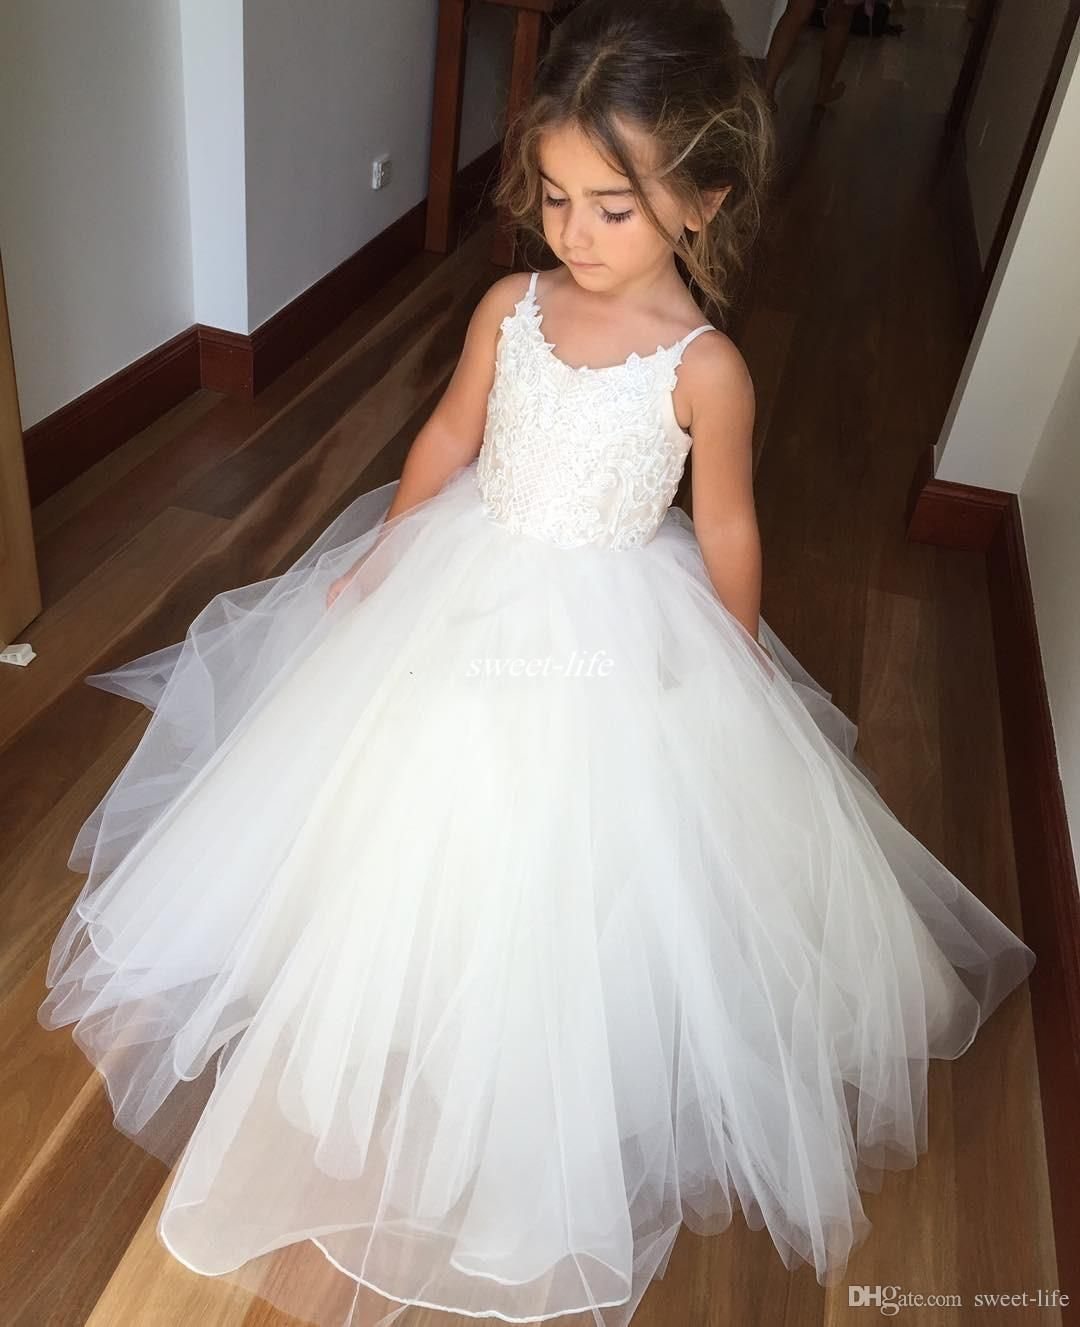 3c51cee03ff0 White Ball Gown Tulle Flower Girl Dresses For Vintage Wedding ...